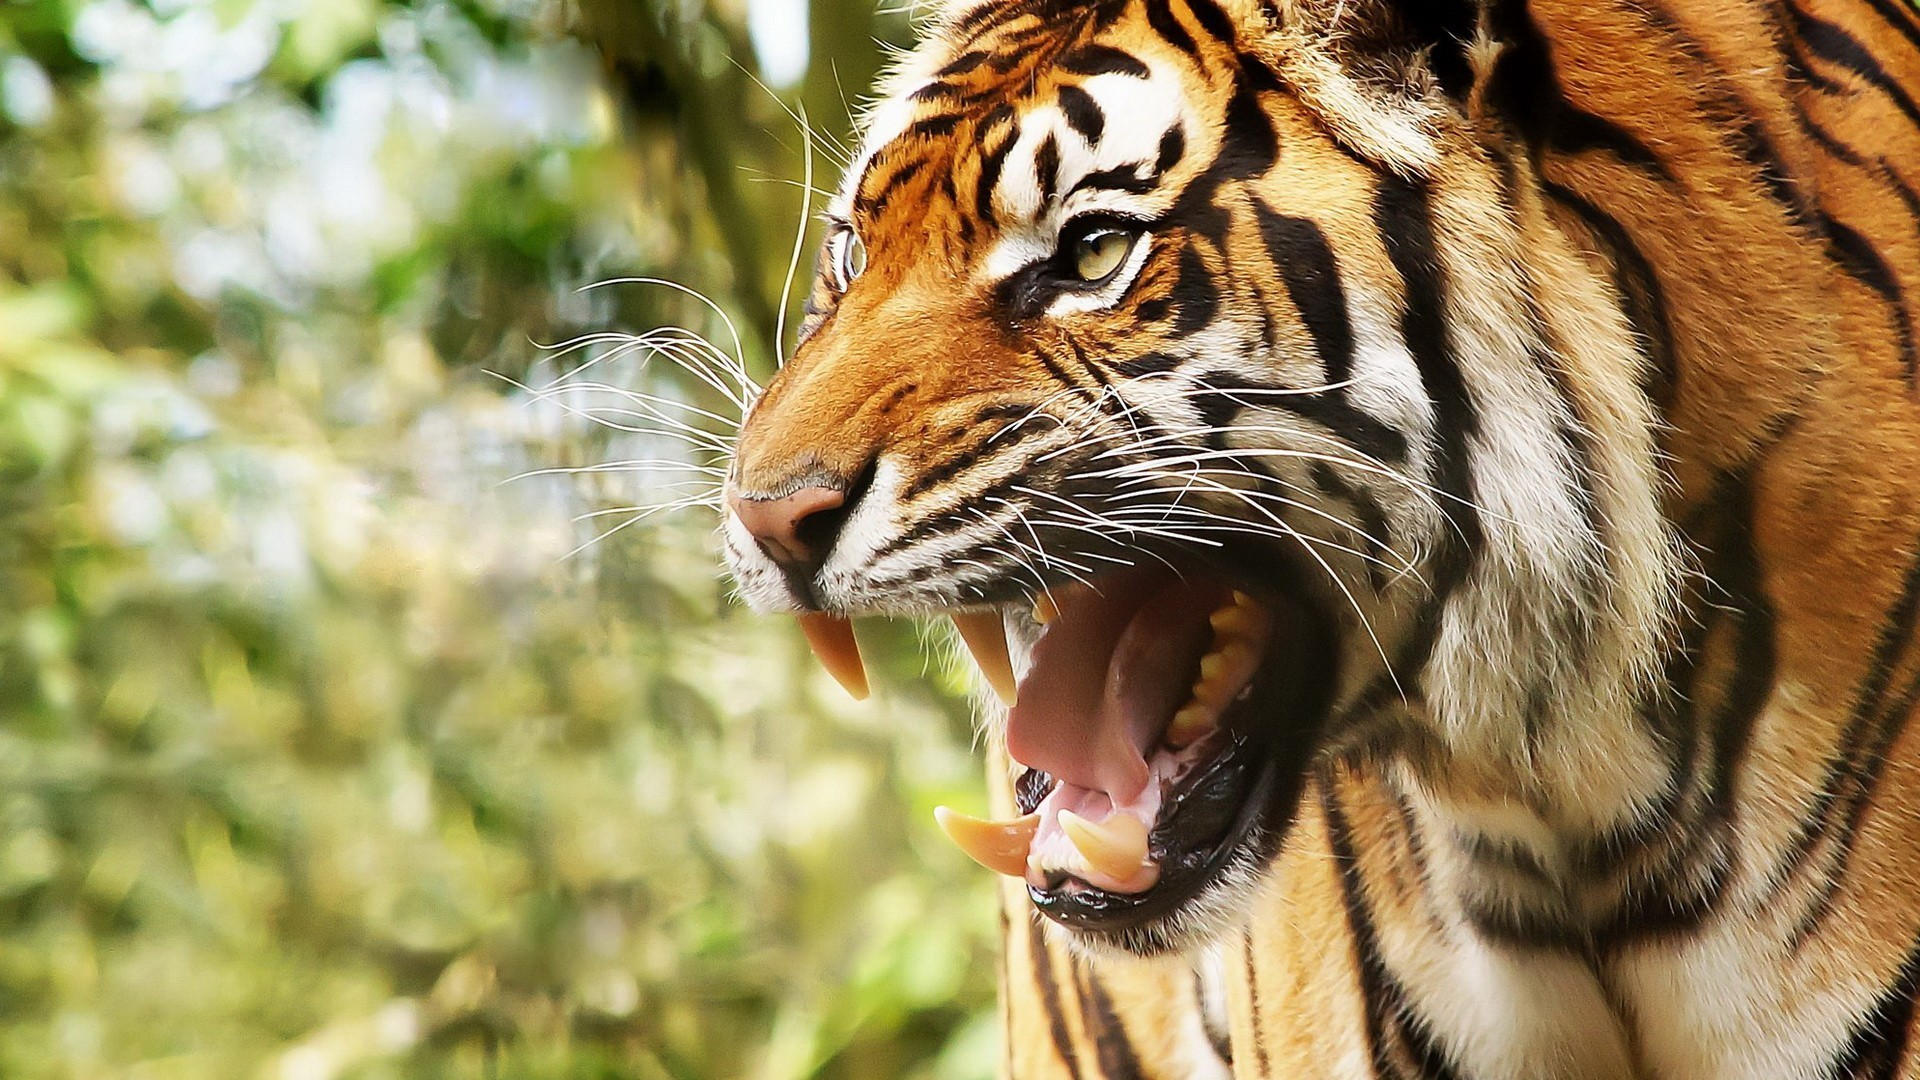 Tigers Images Hd Posted By Sarah Simpson